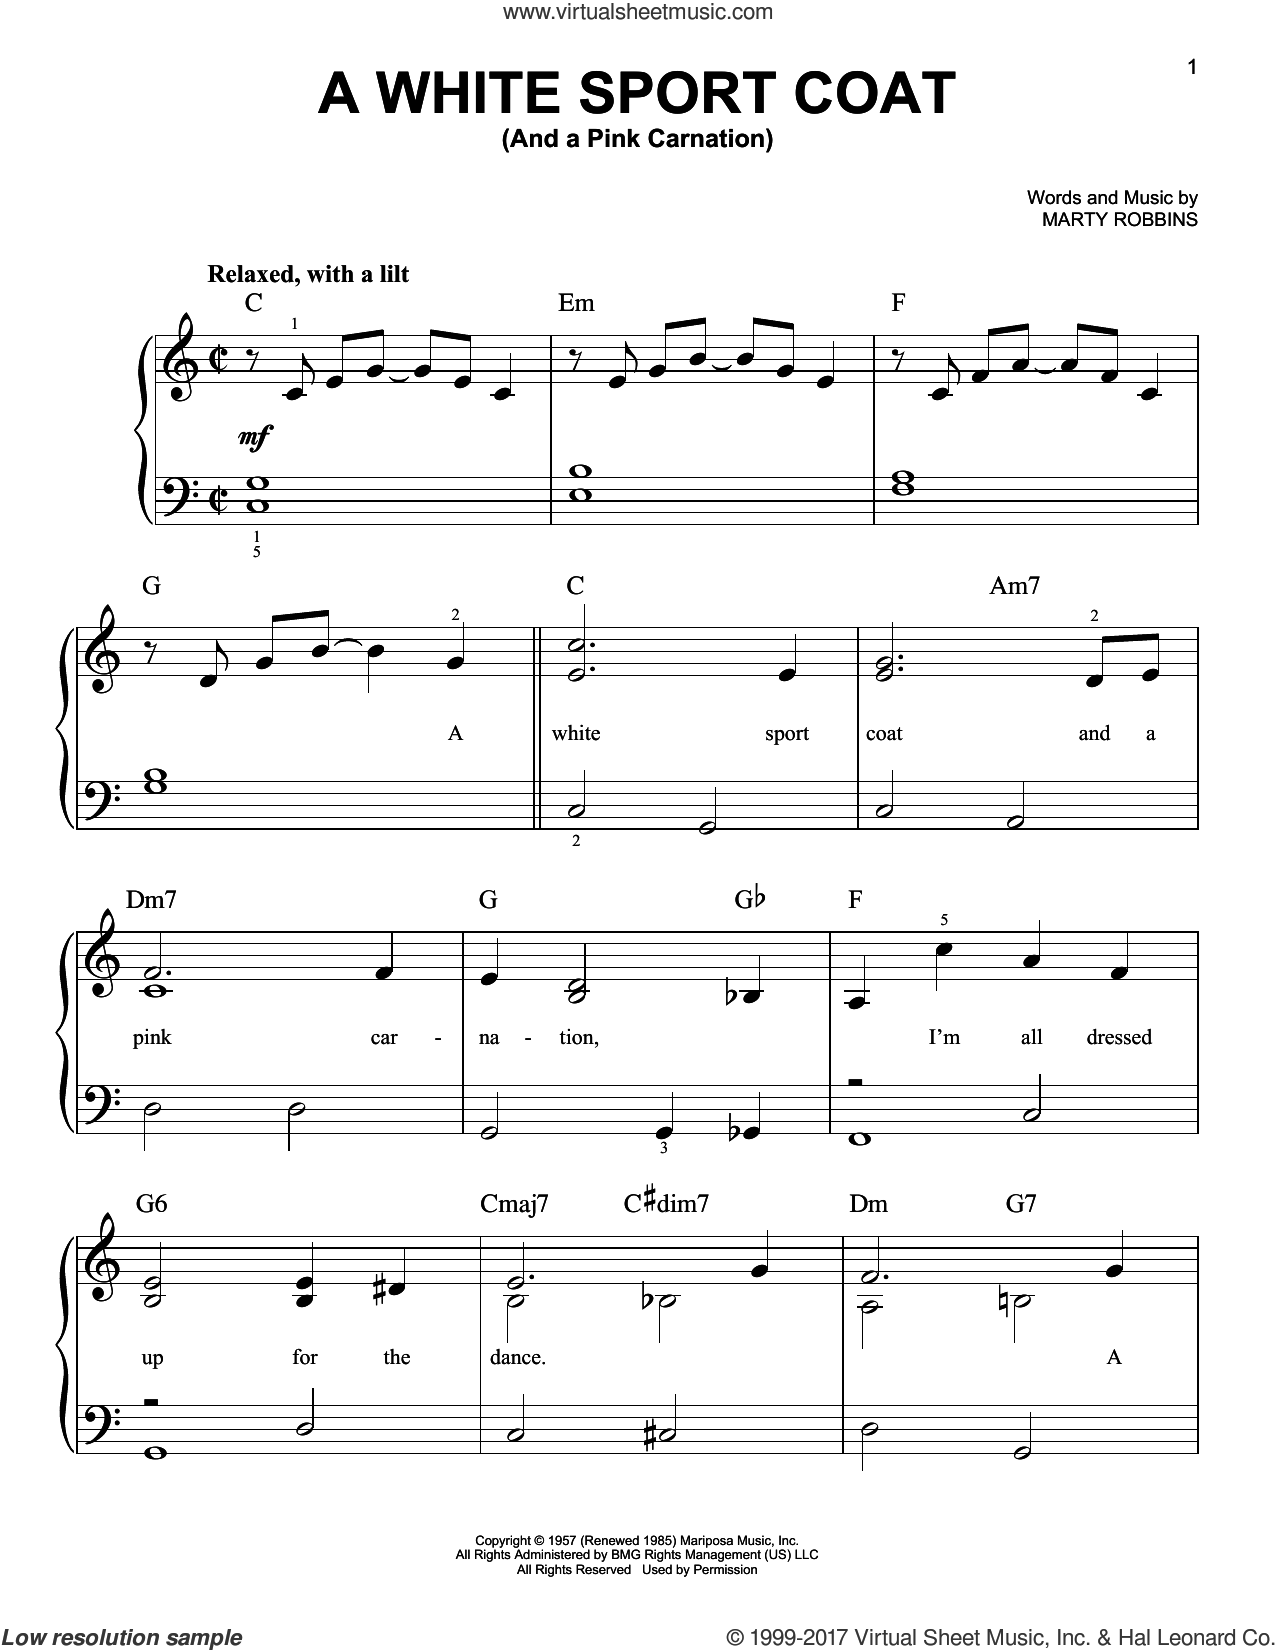 A White Sport Coat (And A Pink Carnation) sheet music for piano solo by Marty Robbins, easy skill level